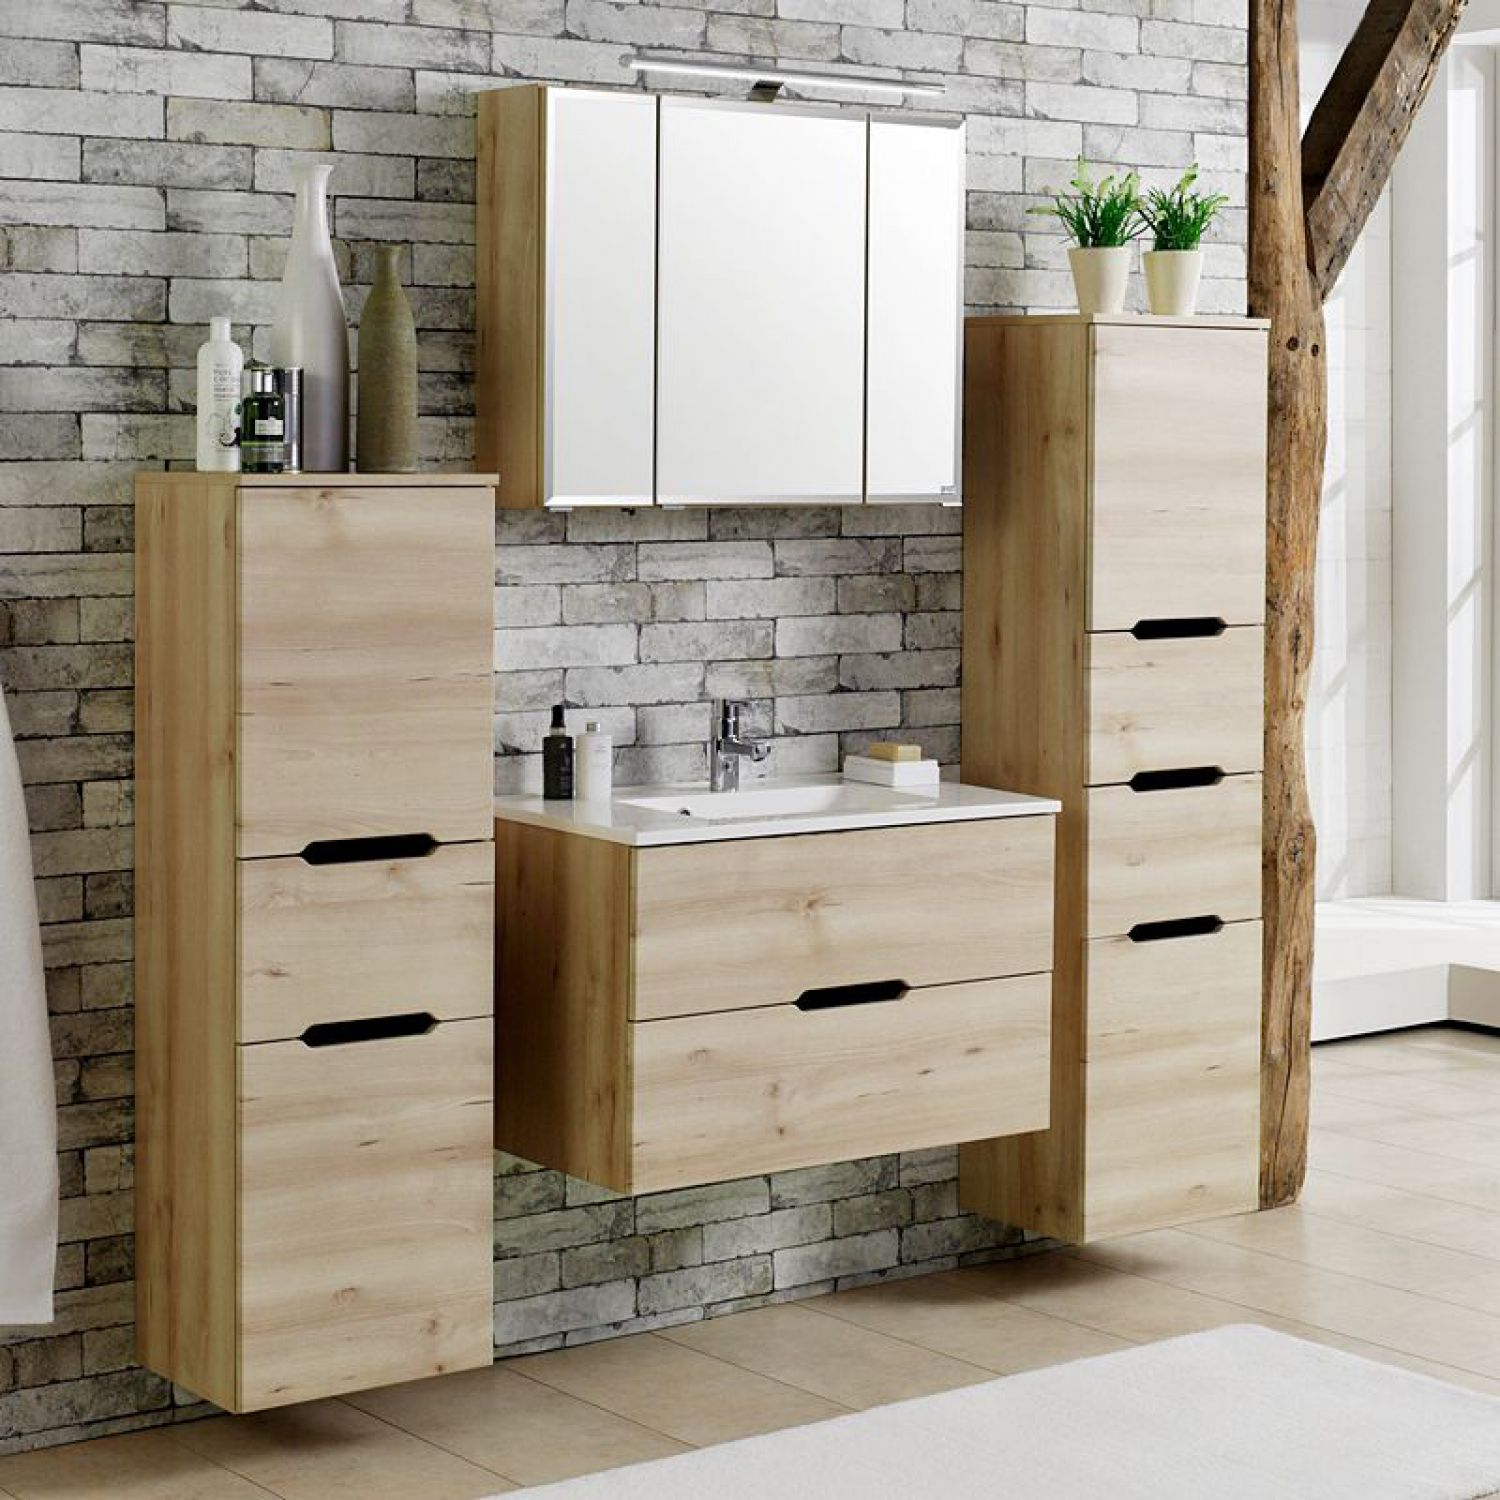 komplett badezimmer set buche badm bel 80cm waschtisch spiegelschrank waschplatz ebay. Black Bedroom Furniture Sets. Home Design Ideas